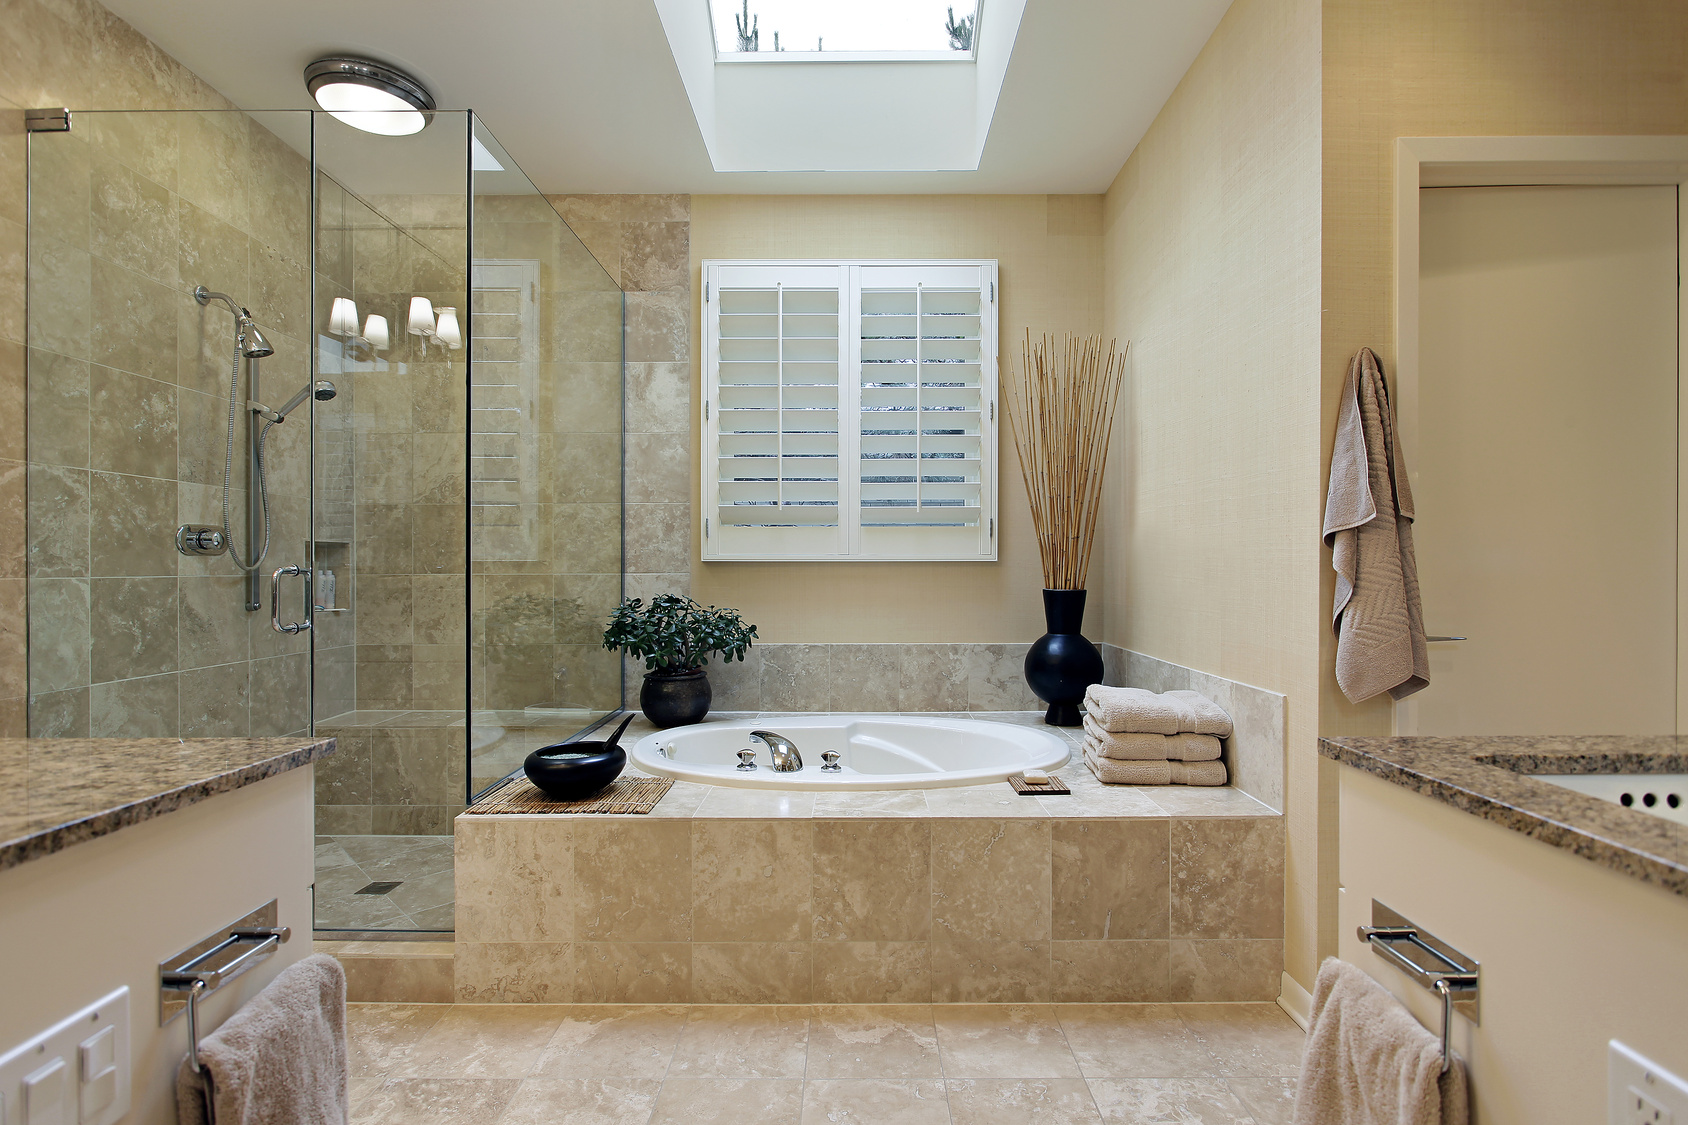 bathroom colors ideas photo - 1